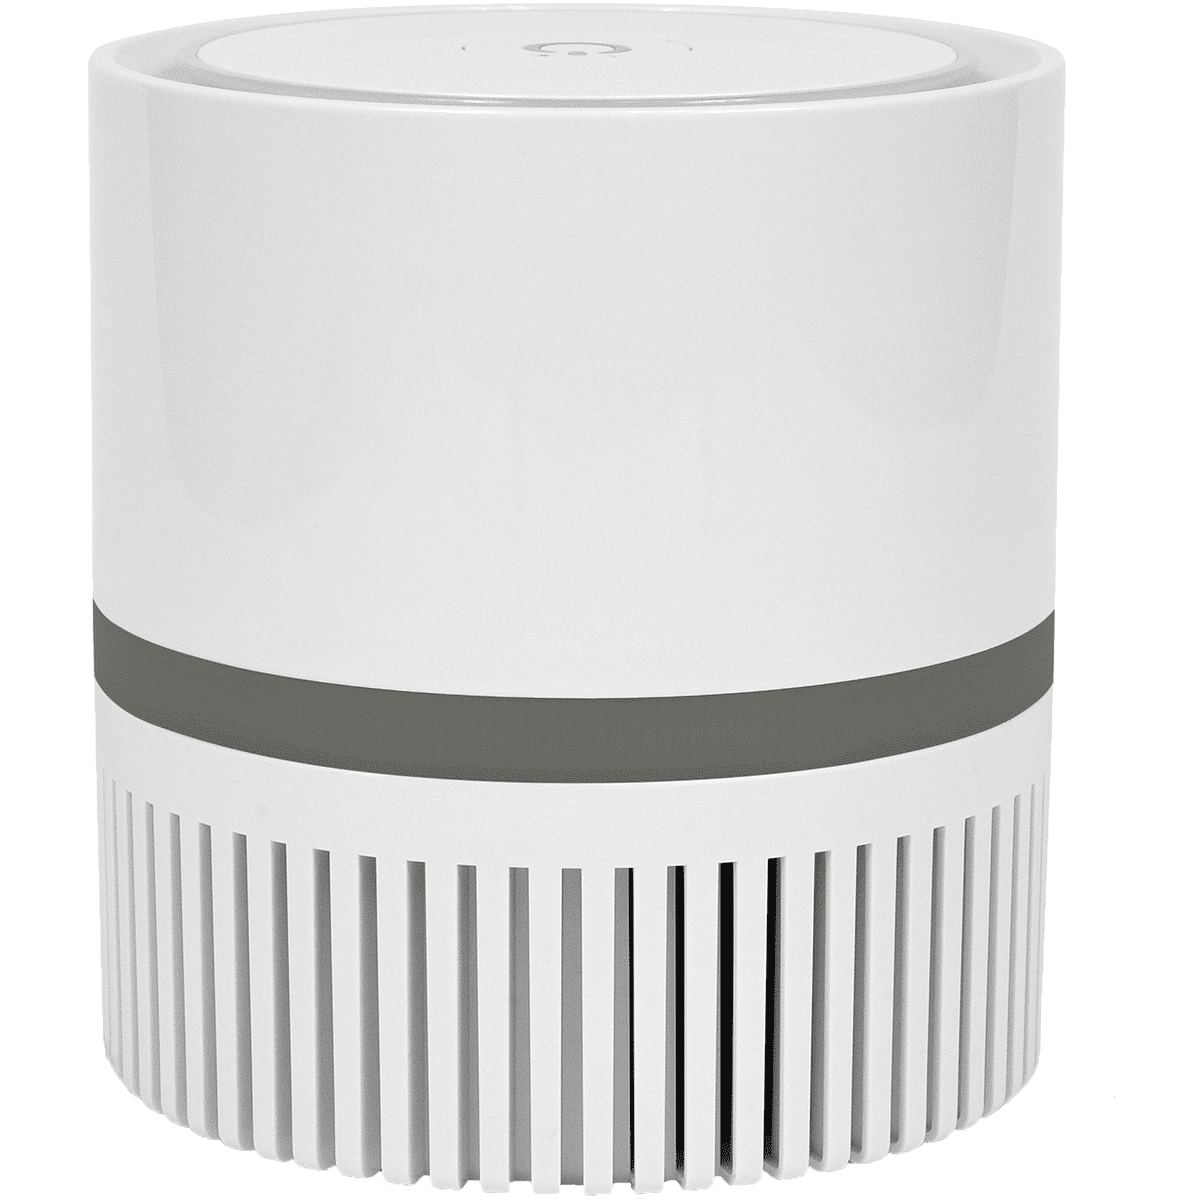 Envion Therapure Compact 360 Air Purifier